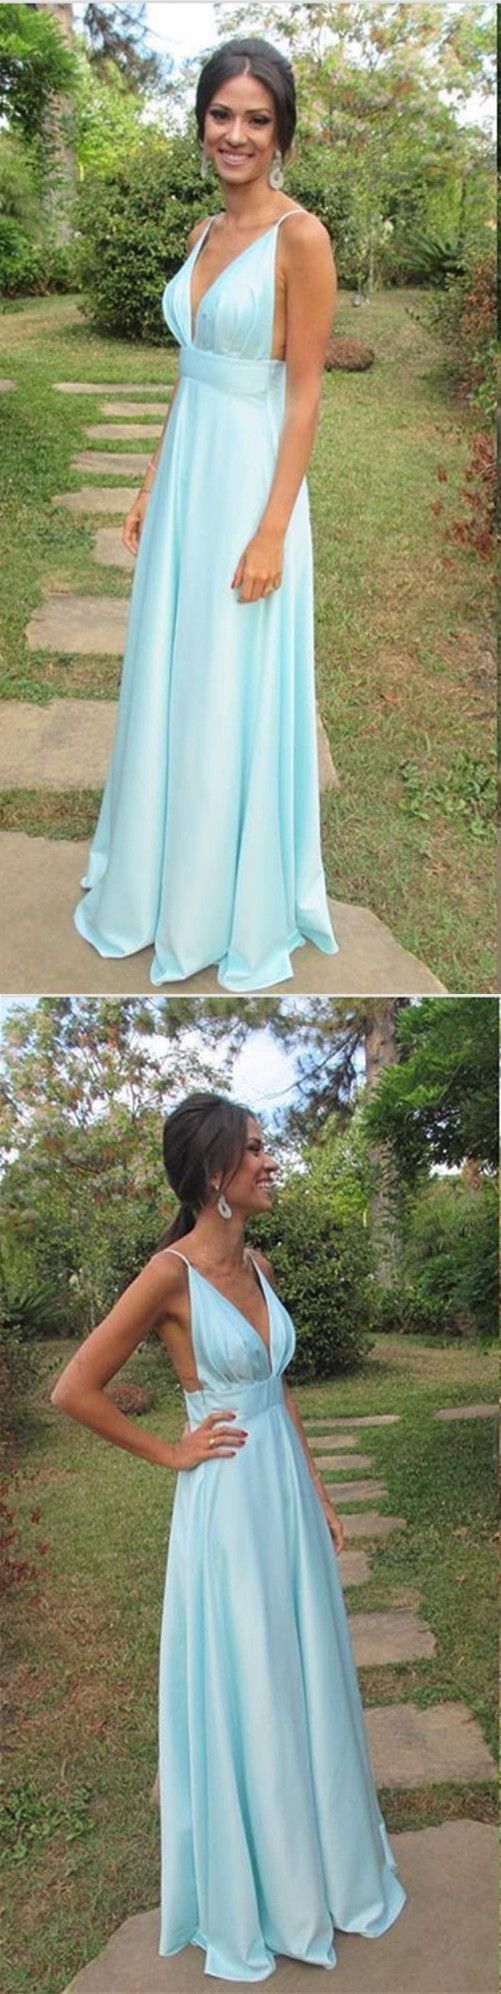 Sexy V neck Summer Evening Dress, A-line Long Prom Gown with Spaghetti Straps